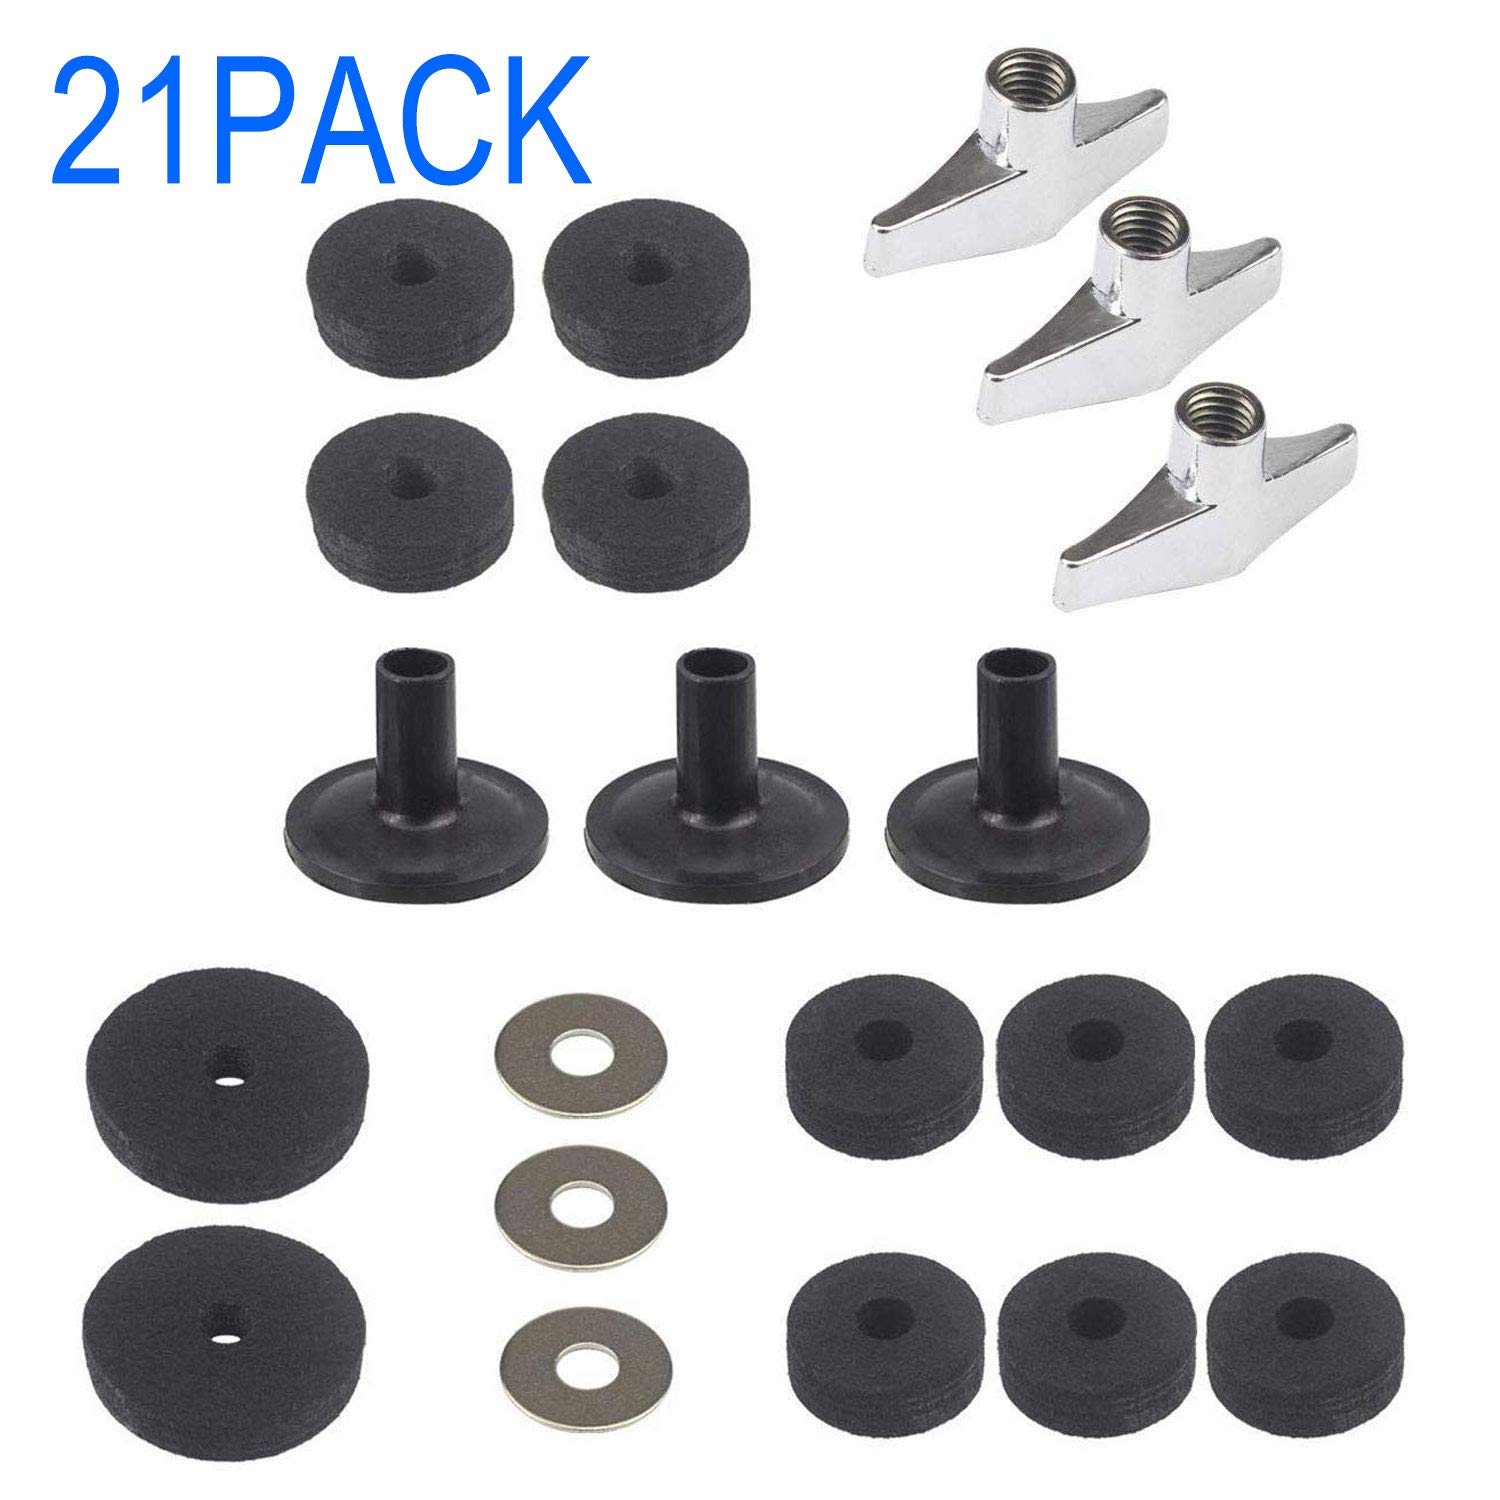 Luckkyme 21 Pieces Cymbal Replacement Accessories Cymbal Stand Sleeves Cymbal Felts with Base Wing Nuts and Cymbal Washer for Drum Set by Luckkyme